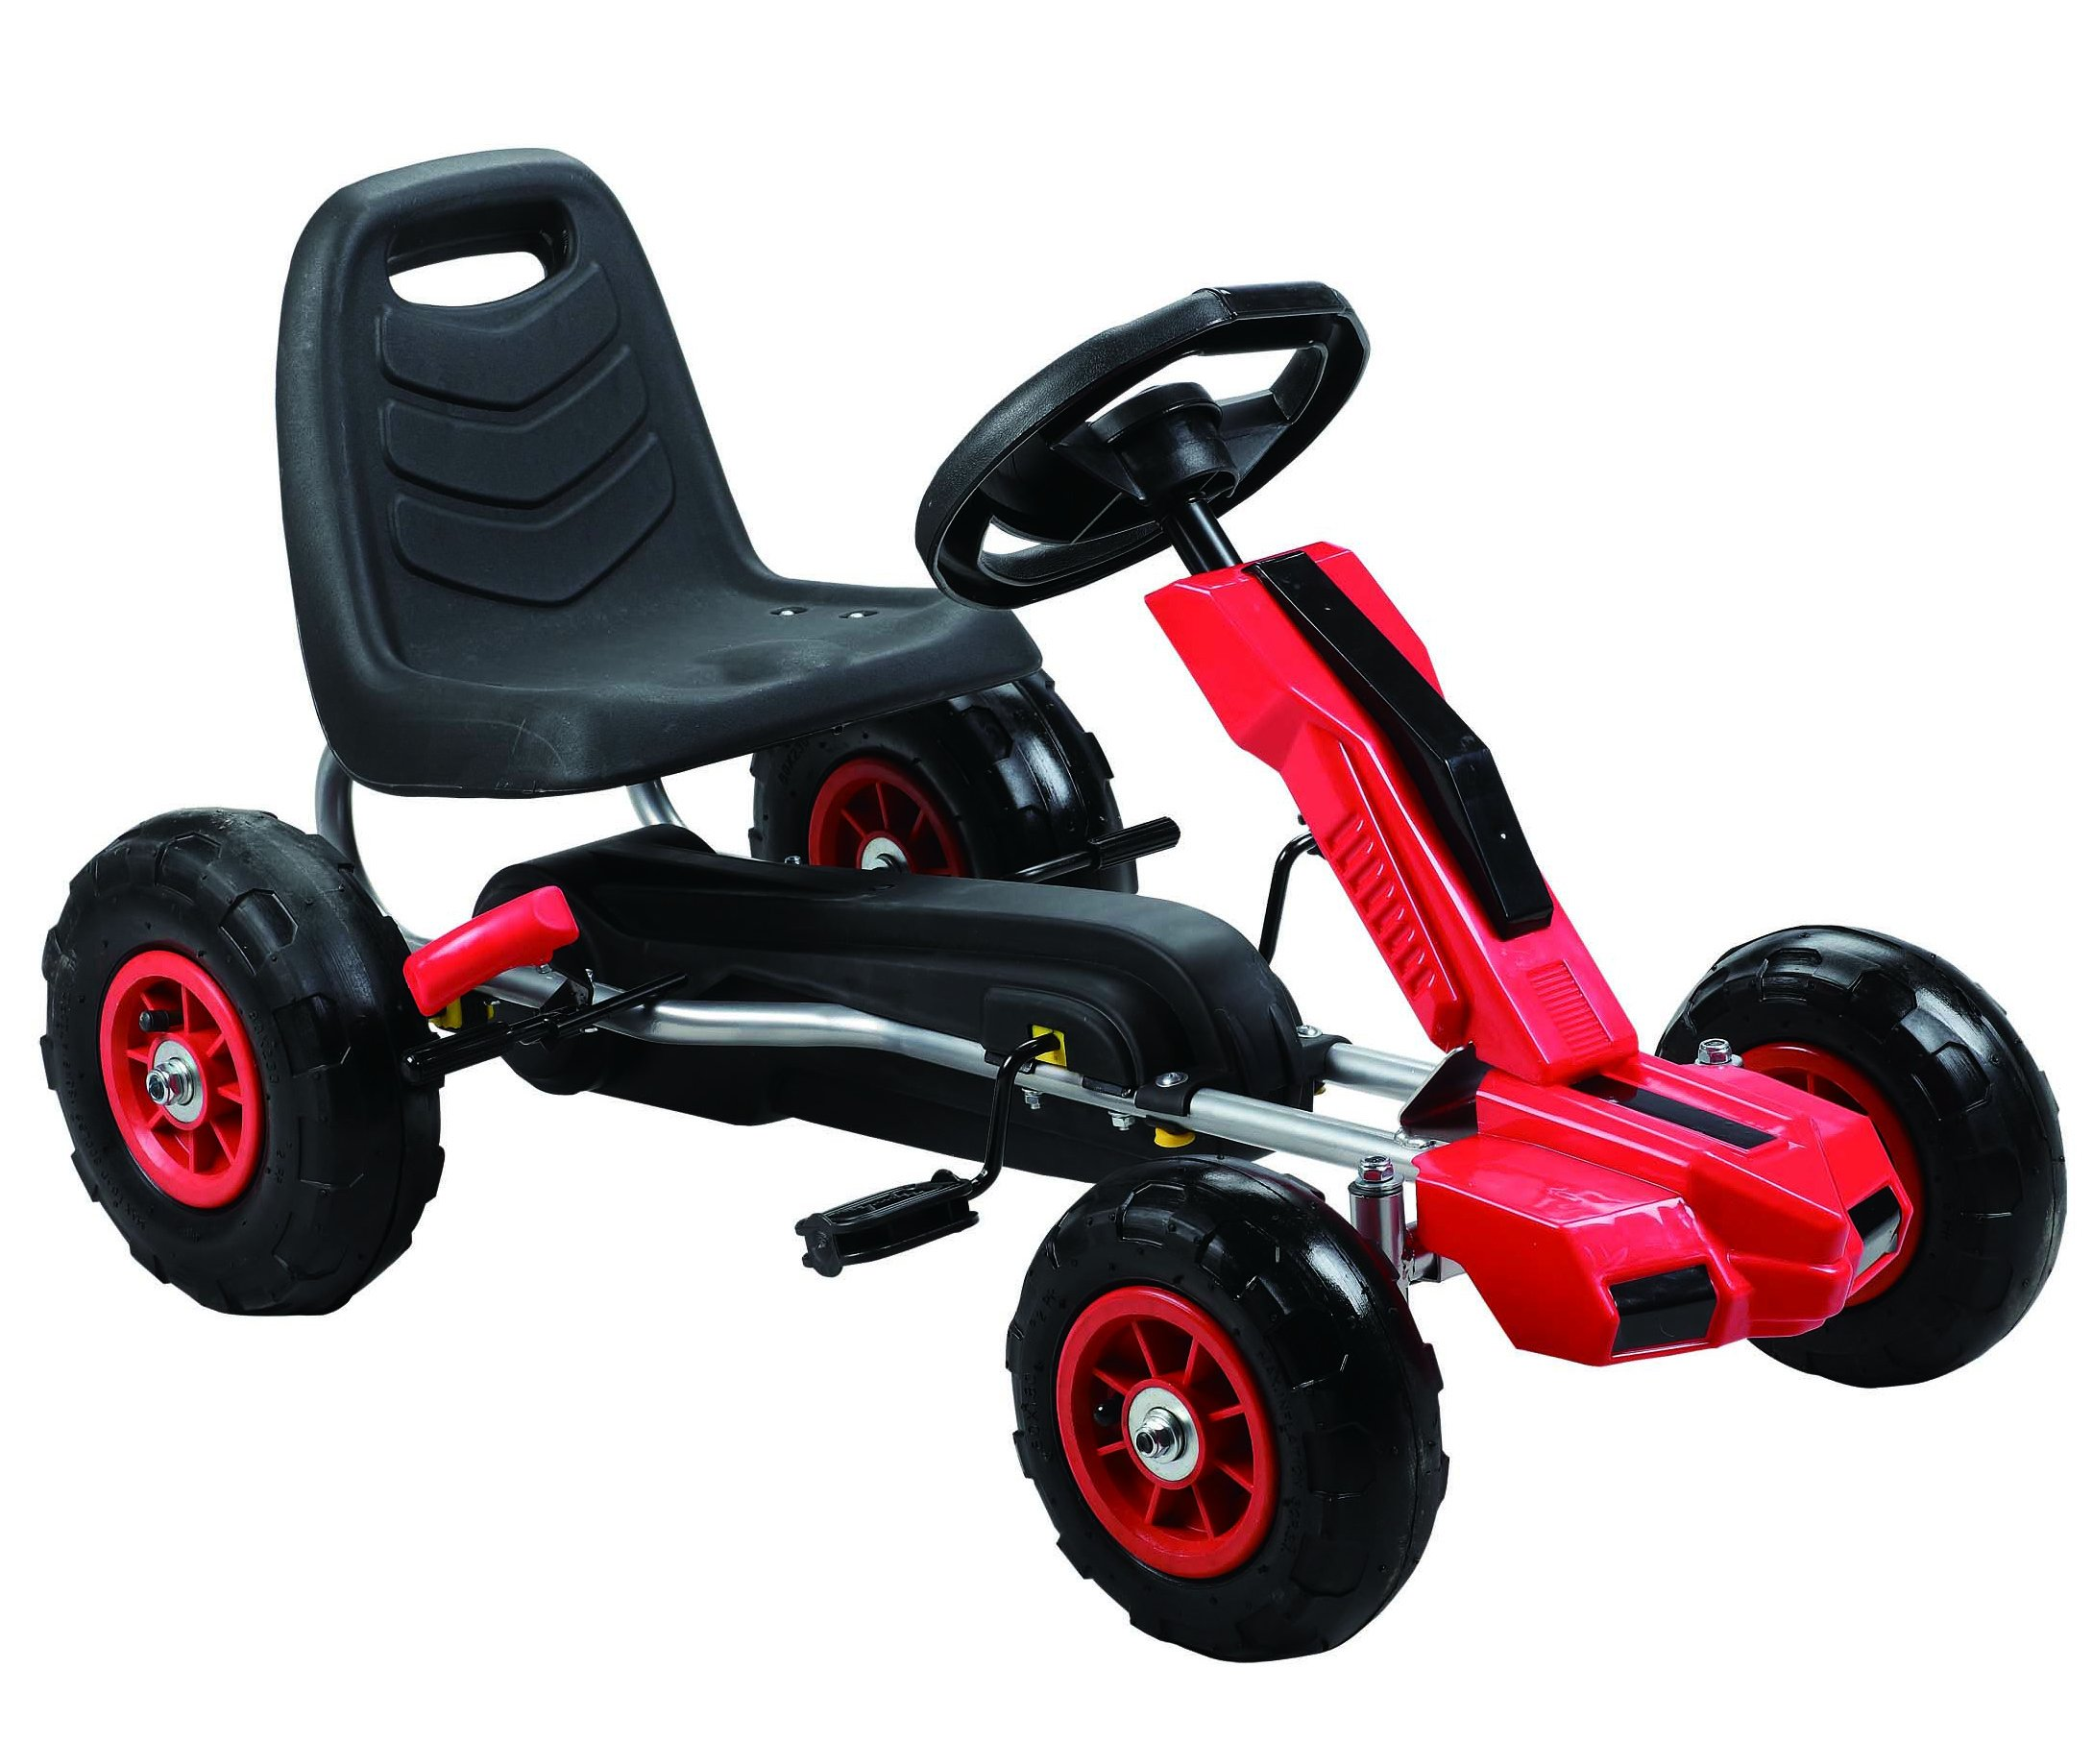 Vroom Rider Power Pedal Go-Kart Ride Ons with Pneumatic Tire, Red